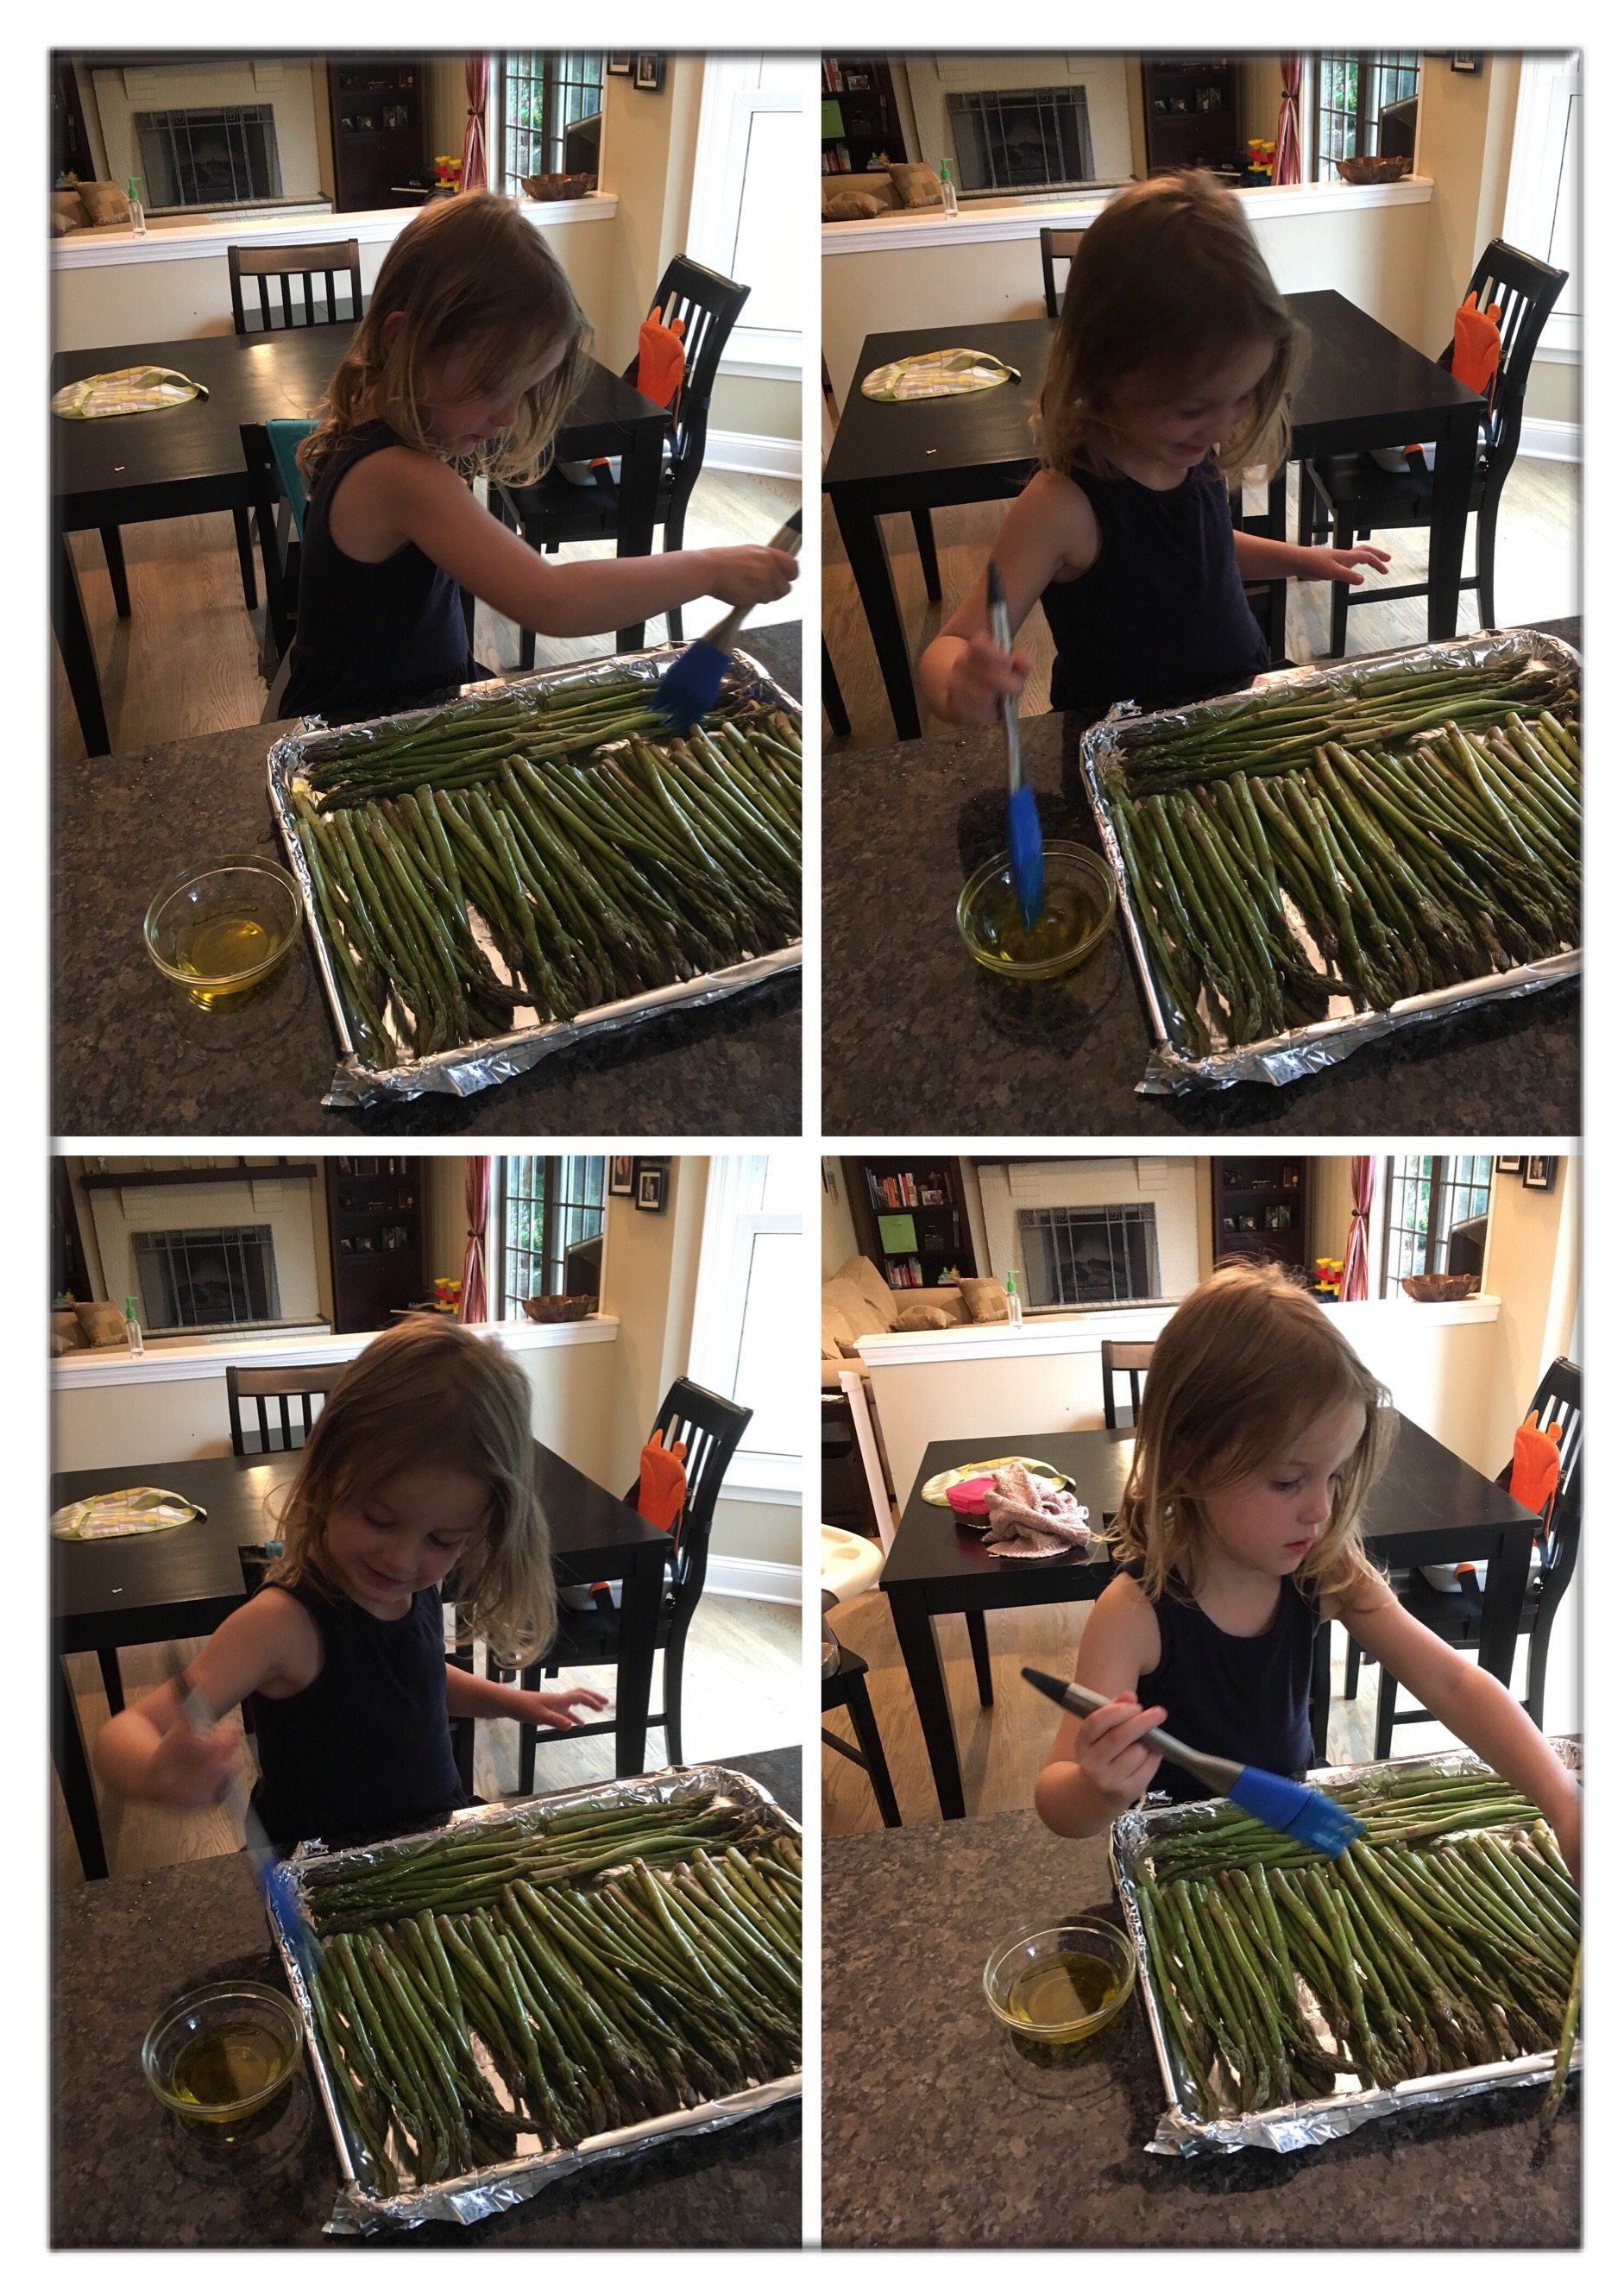 Painting asparagus for oven roasting